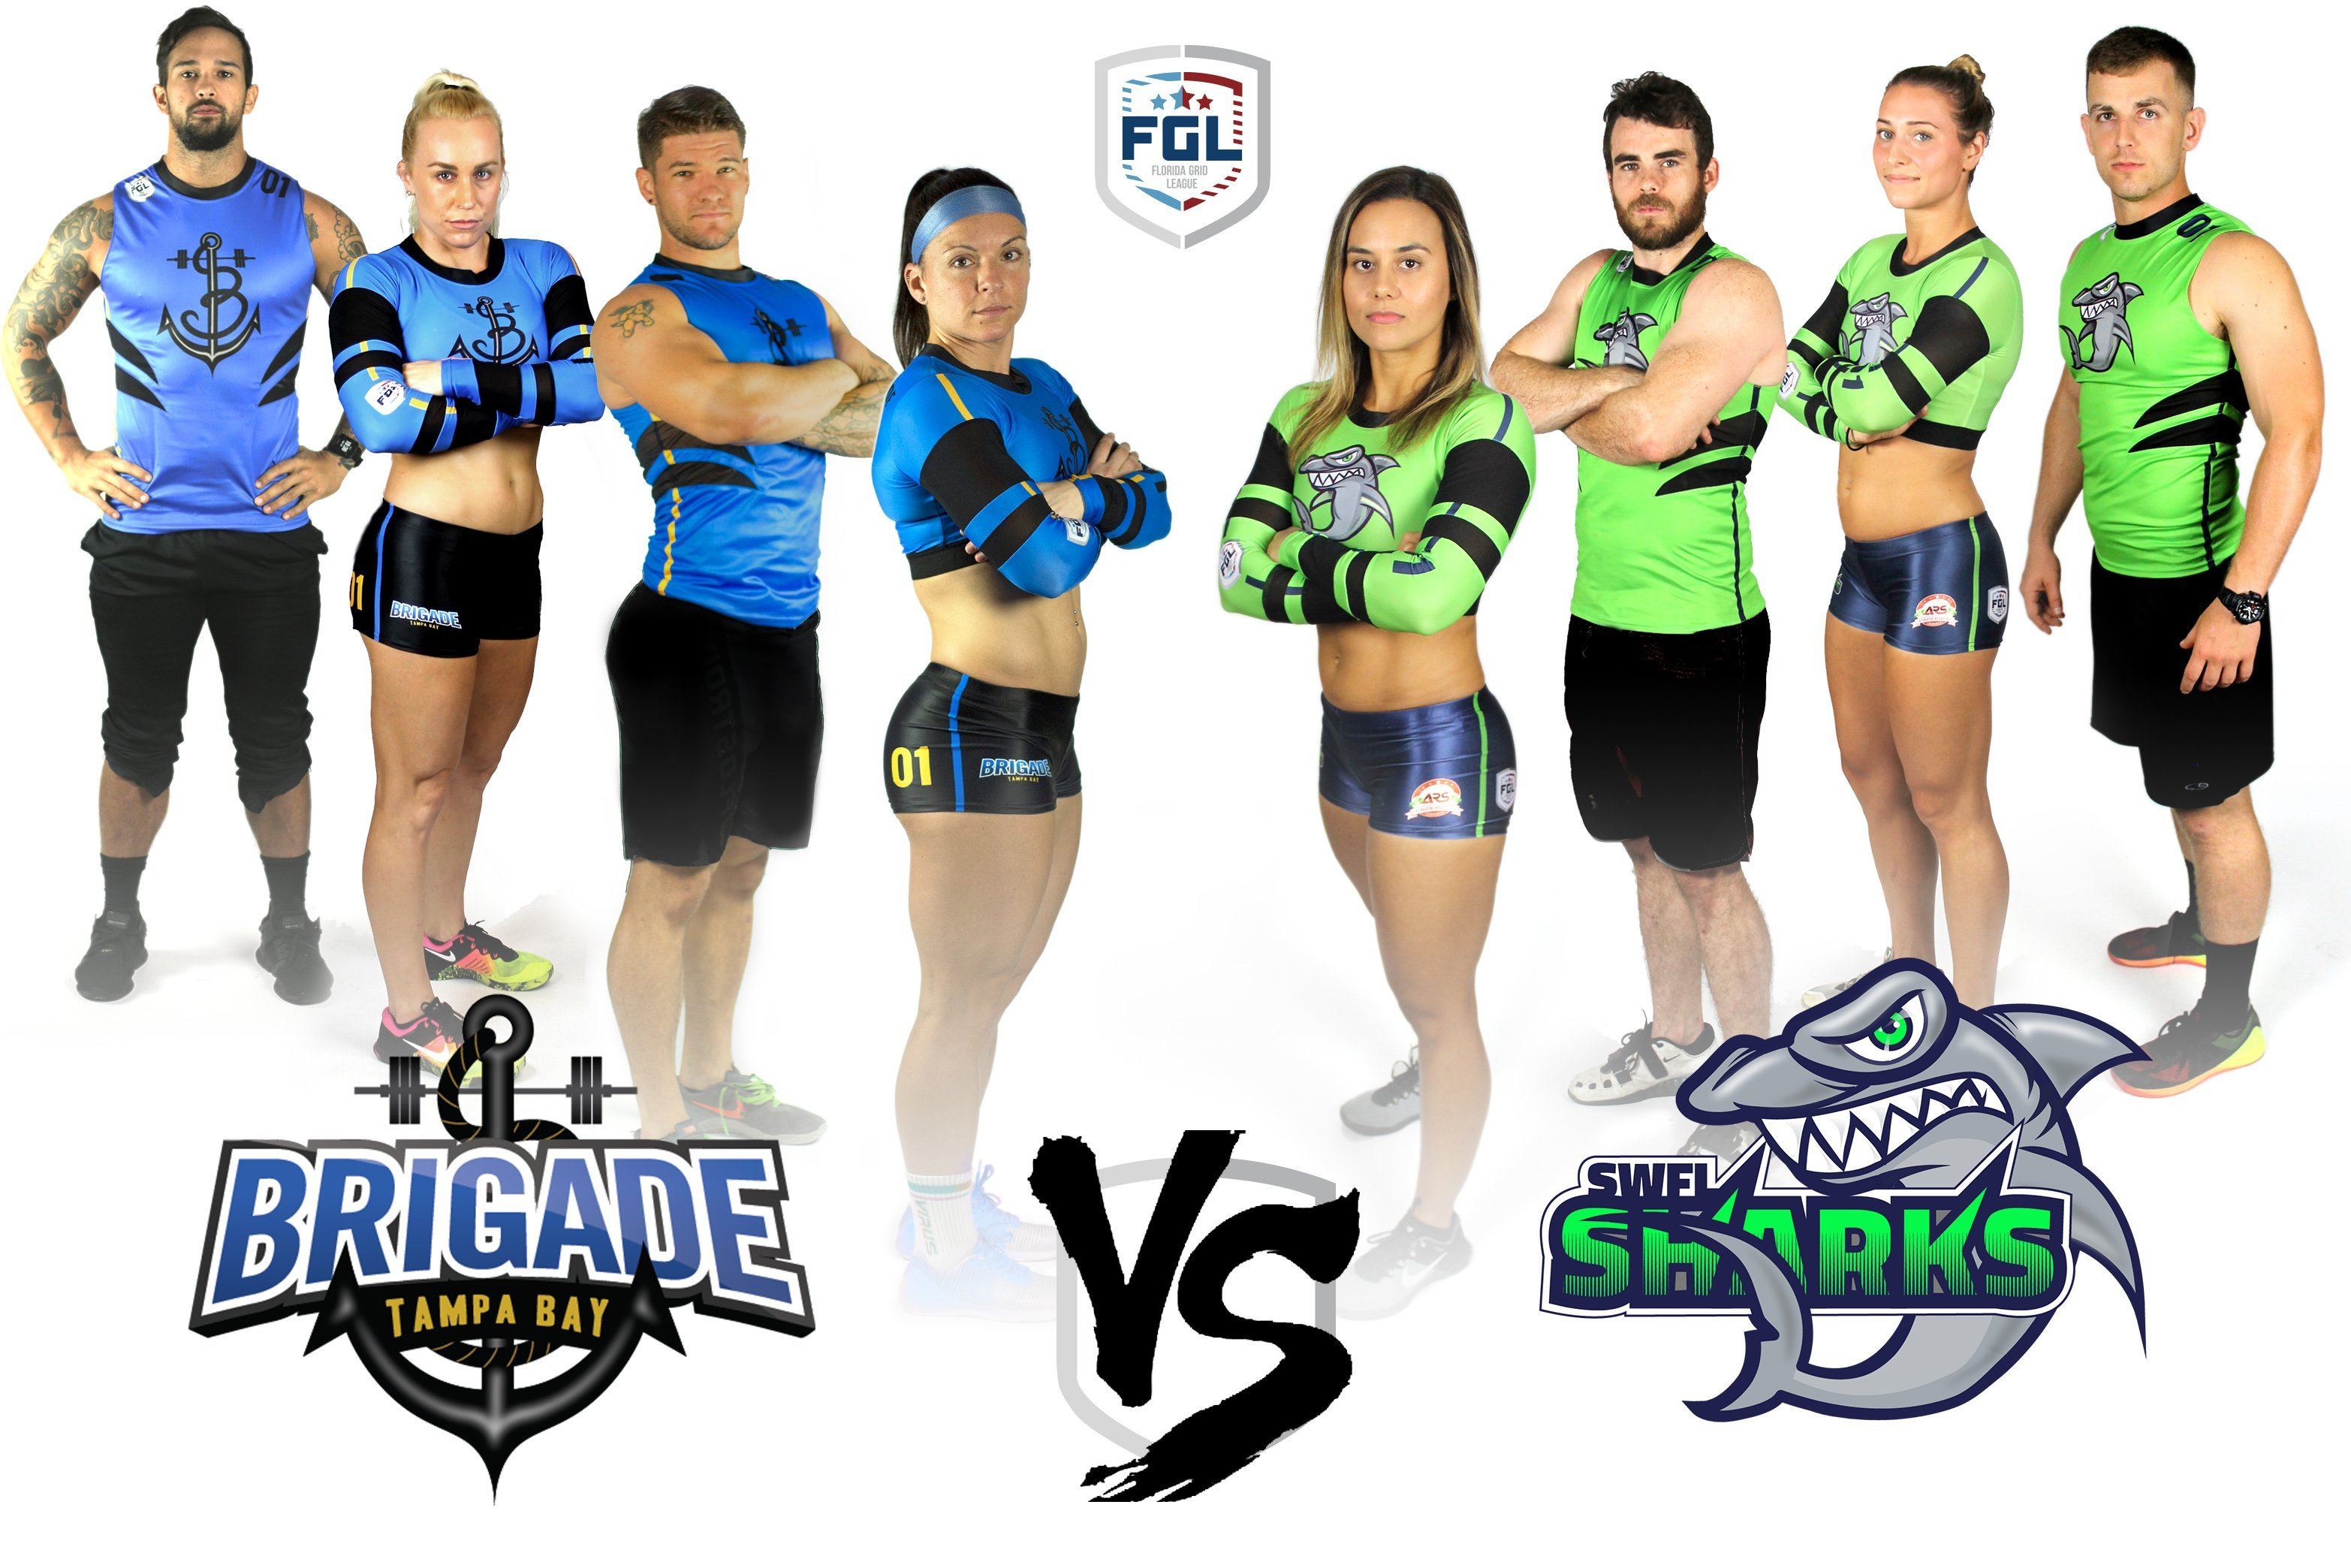 The Tampa Bay Brigade VS The SWFL Sharks